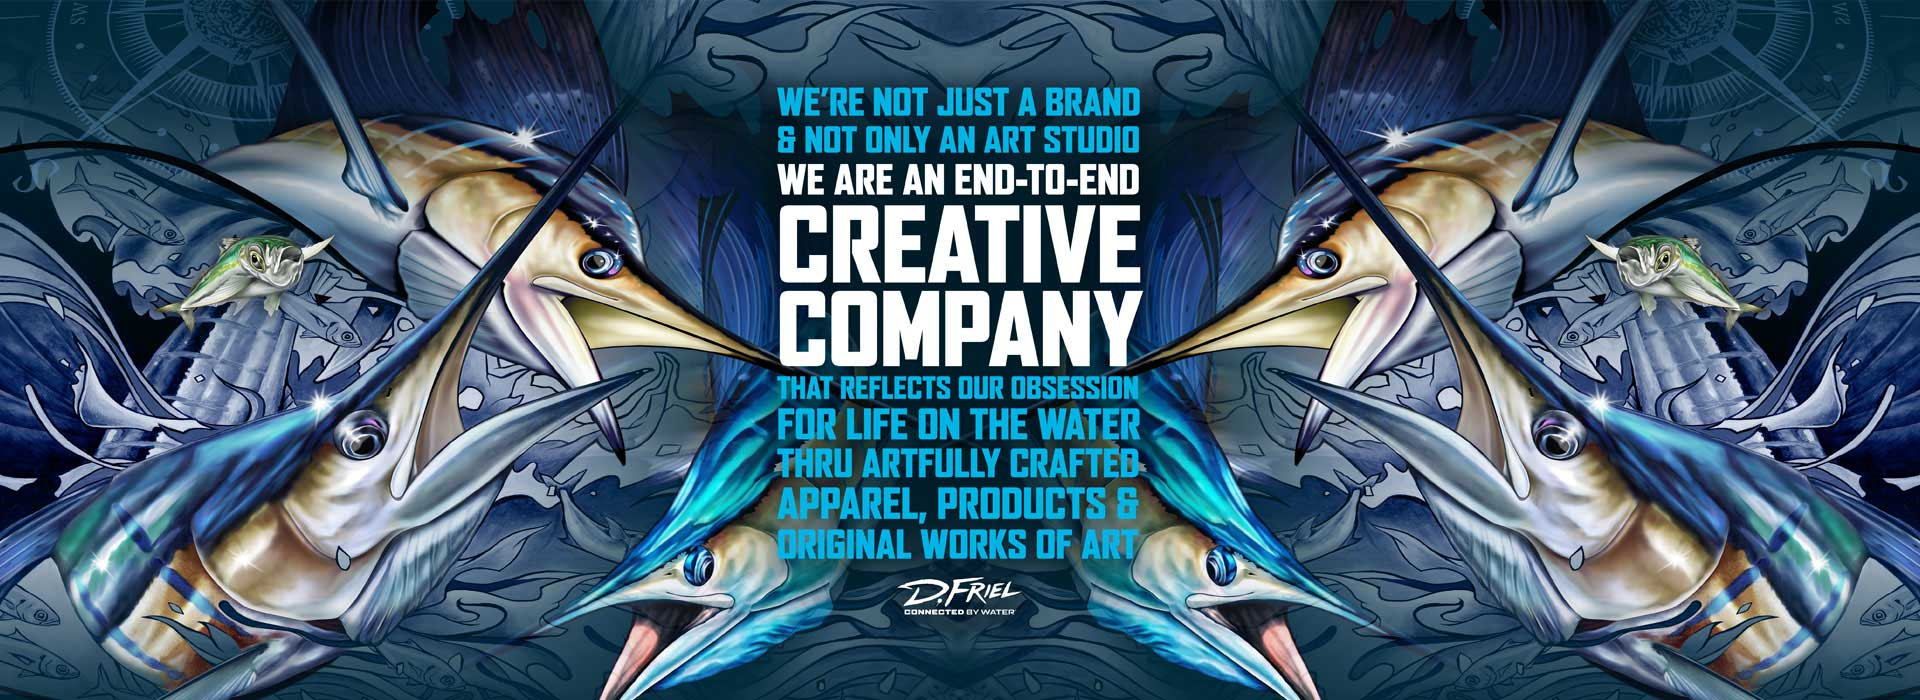 Creative Company Sailfish connected by water